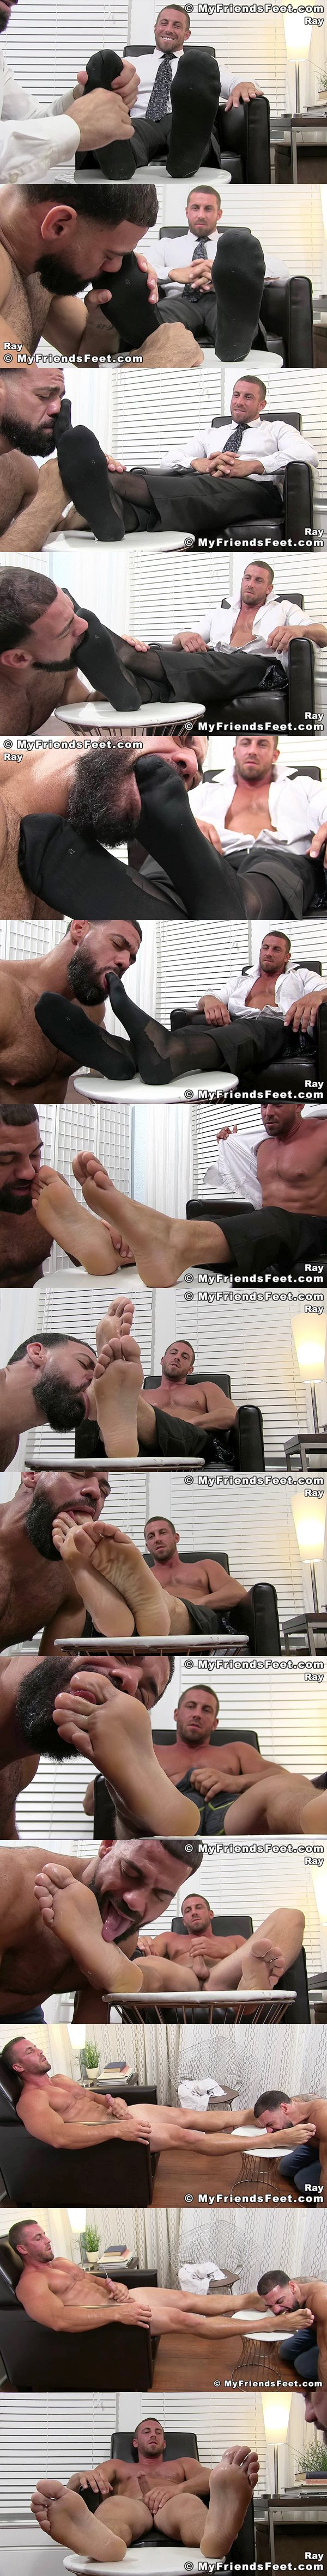 Businessman Ray (aka Derek Jones) cums while being foot worshiped by Ricky Larkin at Myfriendsfeet 02